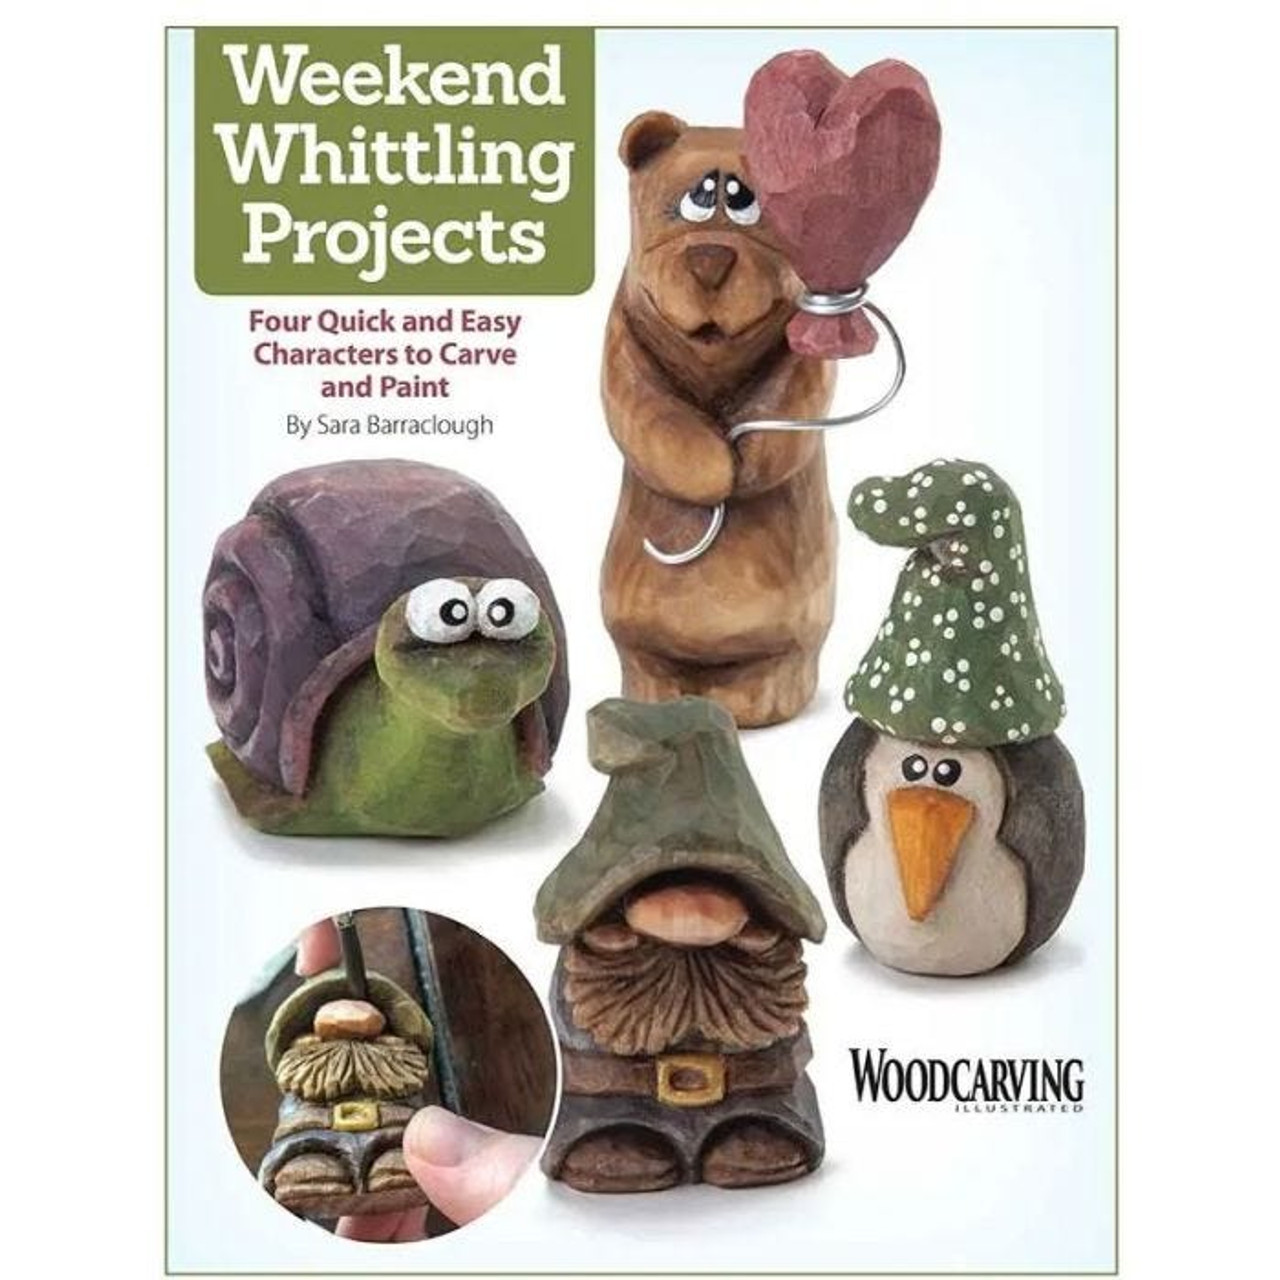 Weekend Whittling Projects is a fun beginner's carving book.